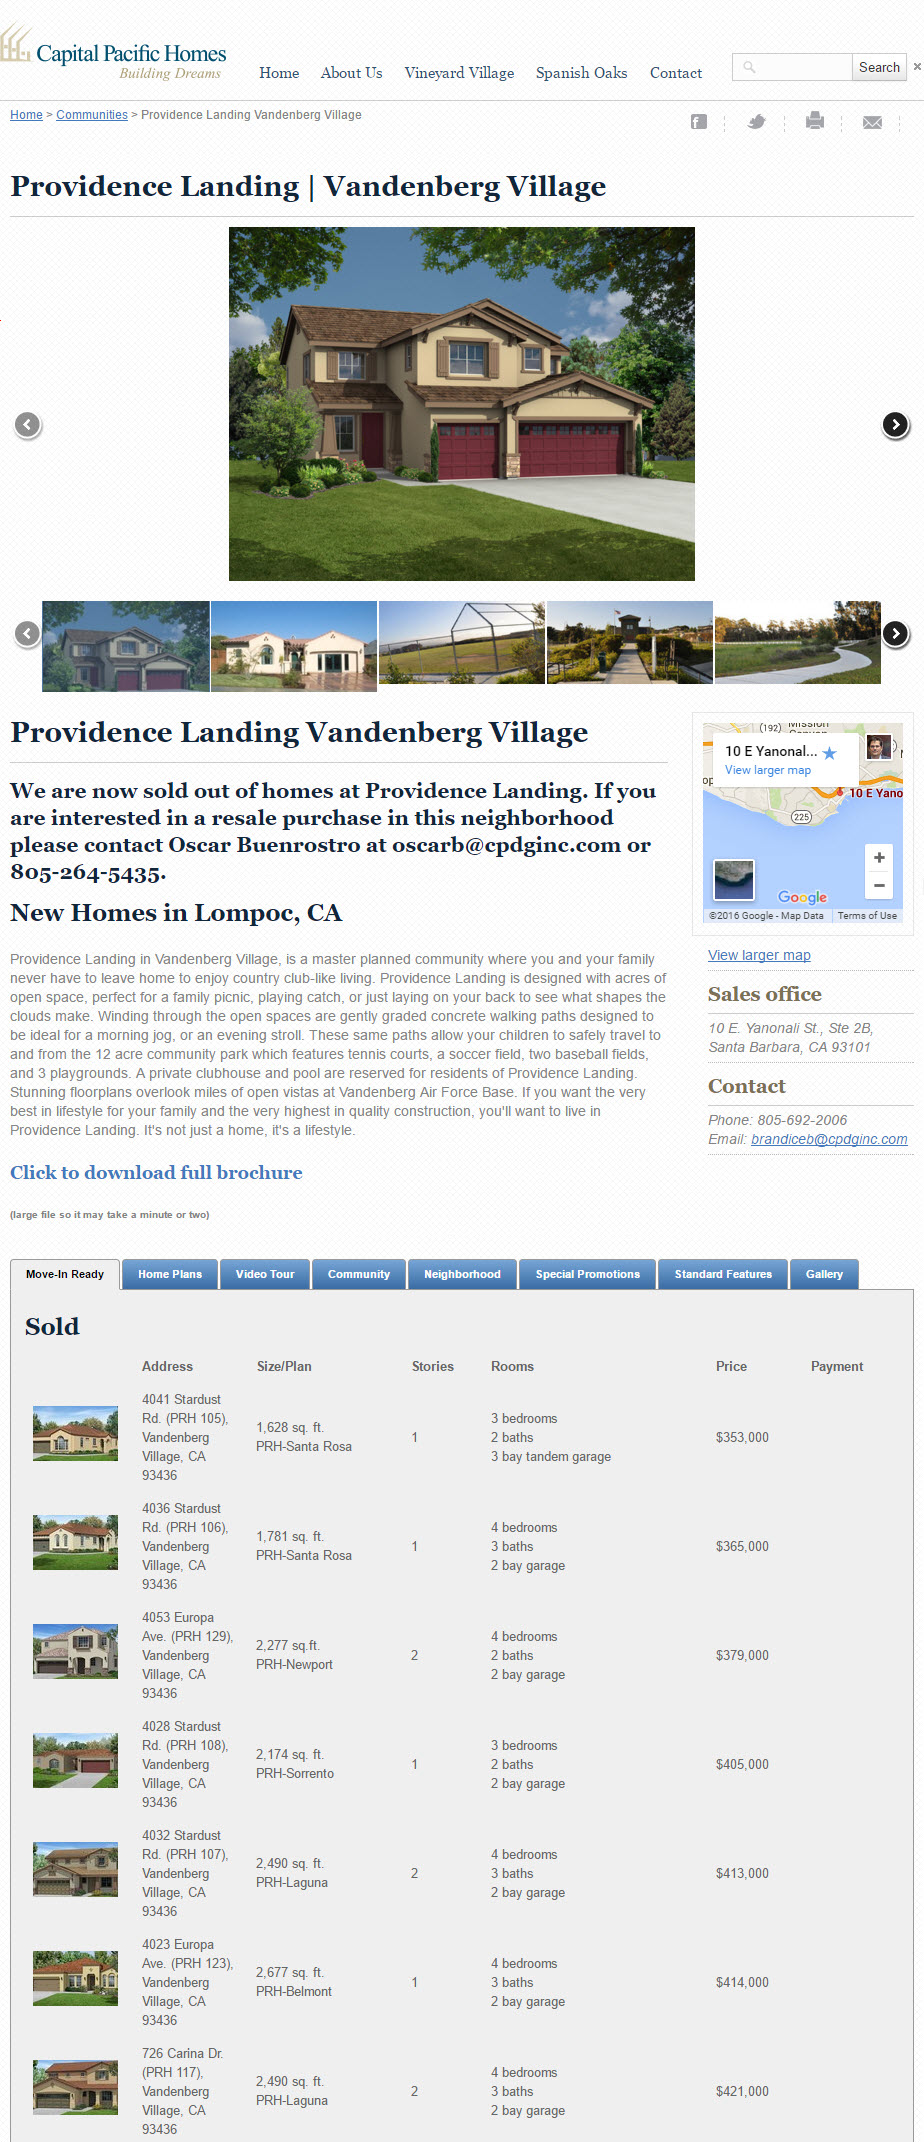 Planned Communities Developer - California Central Coast Home Builders